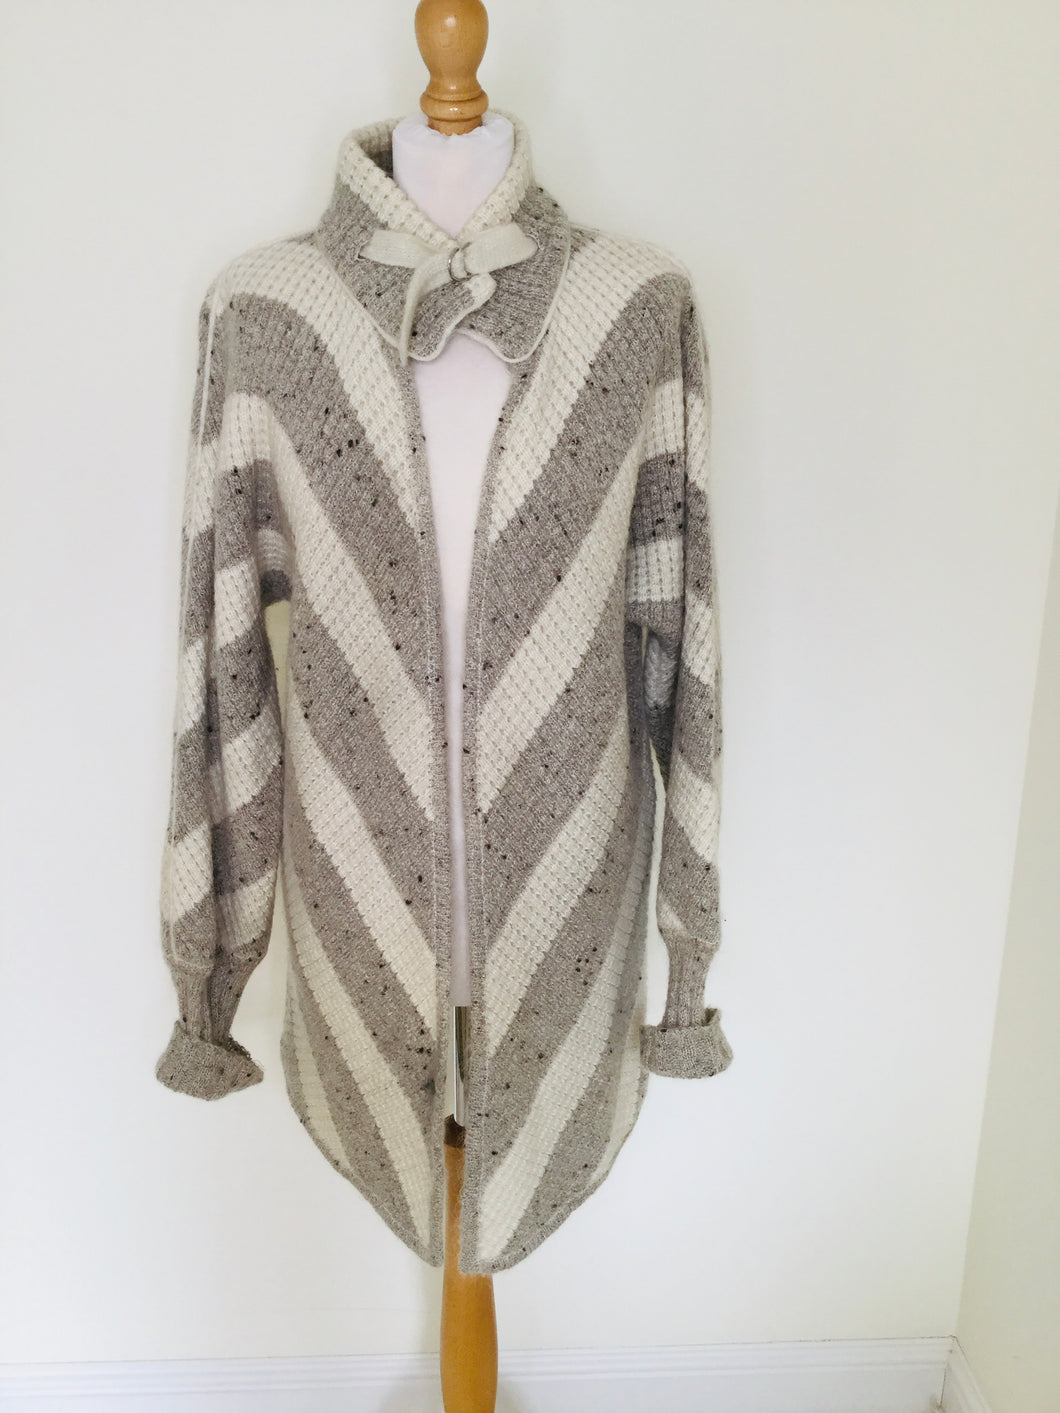 Grey and cream chevron striped cardigan jacket